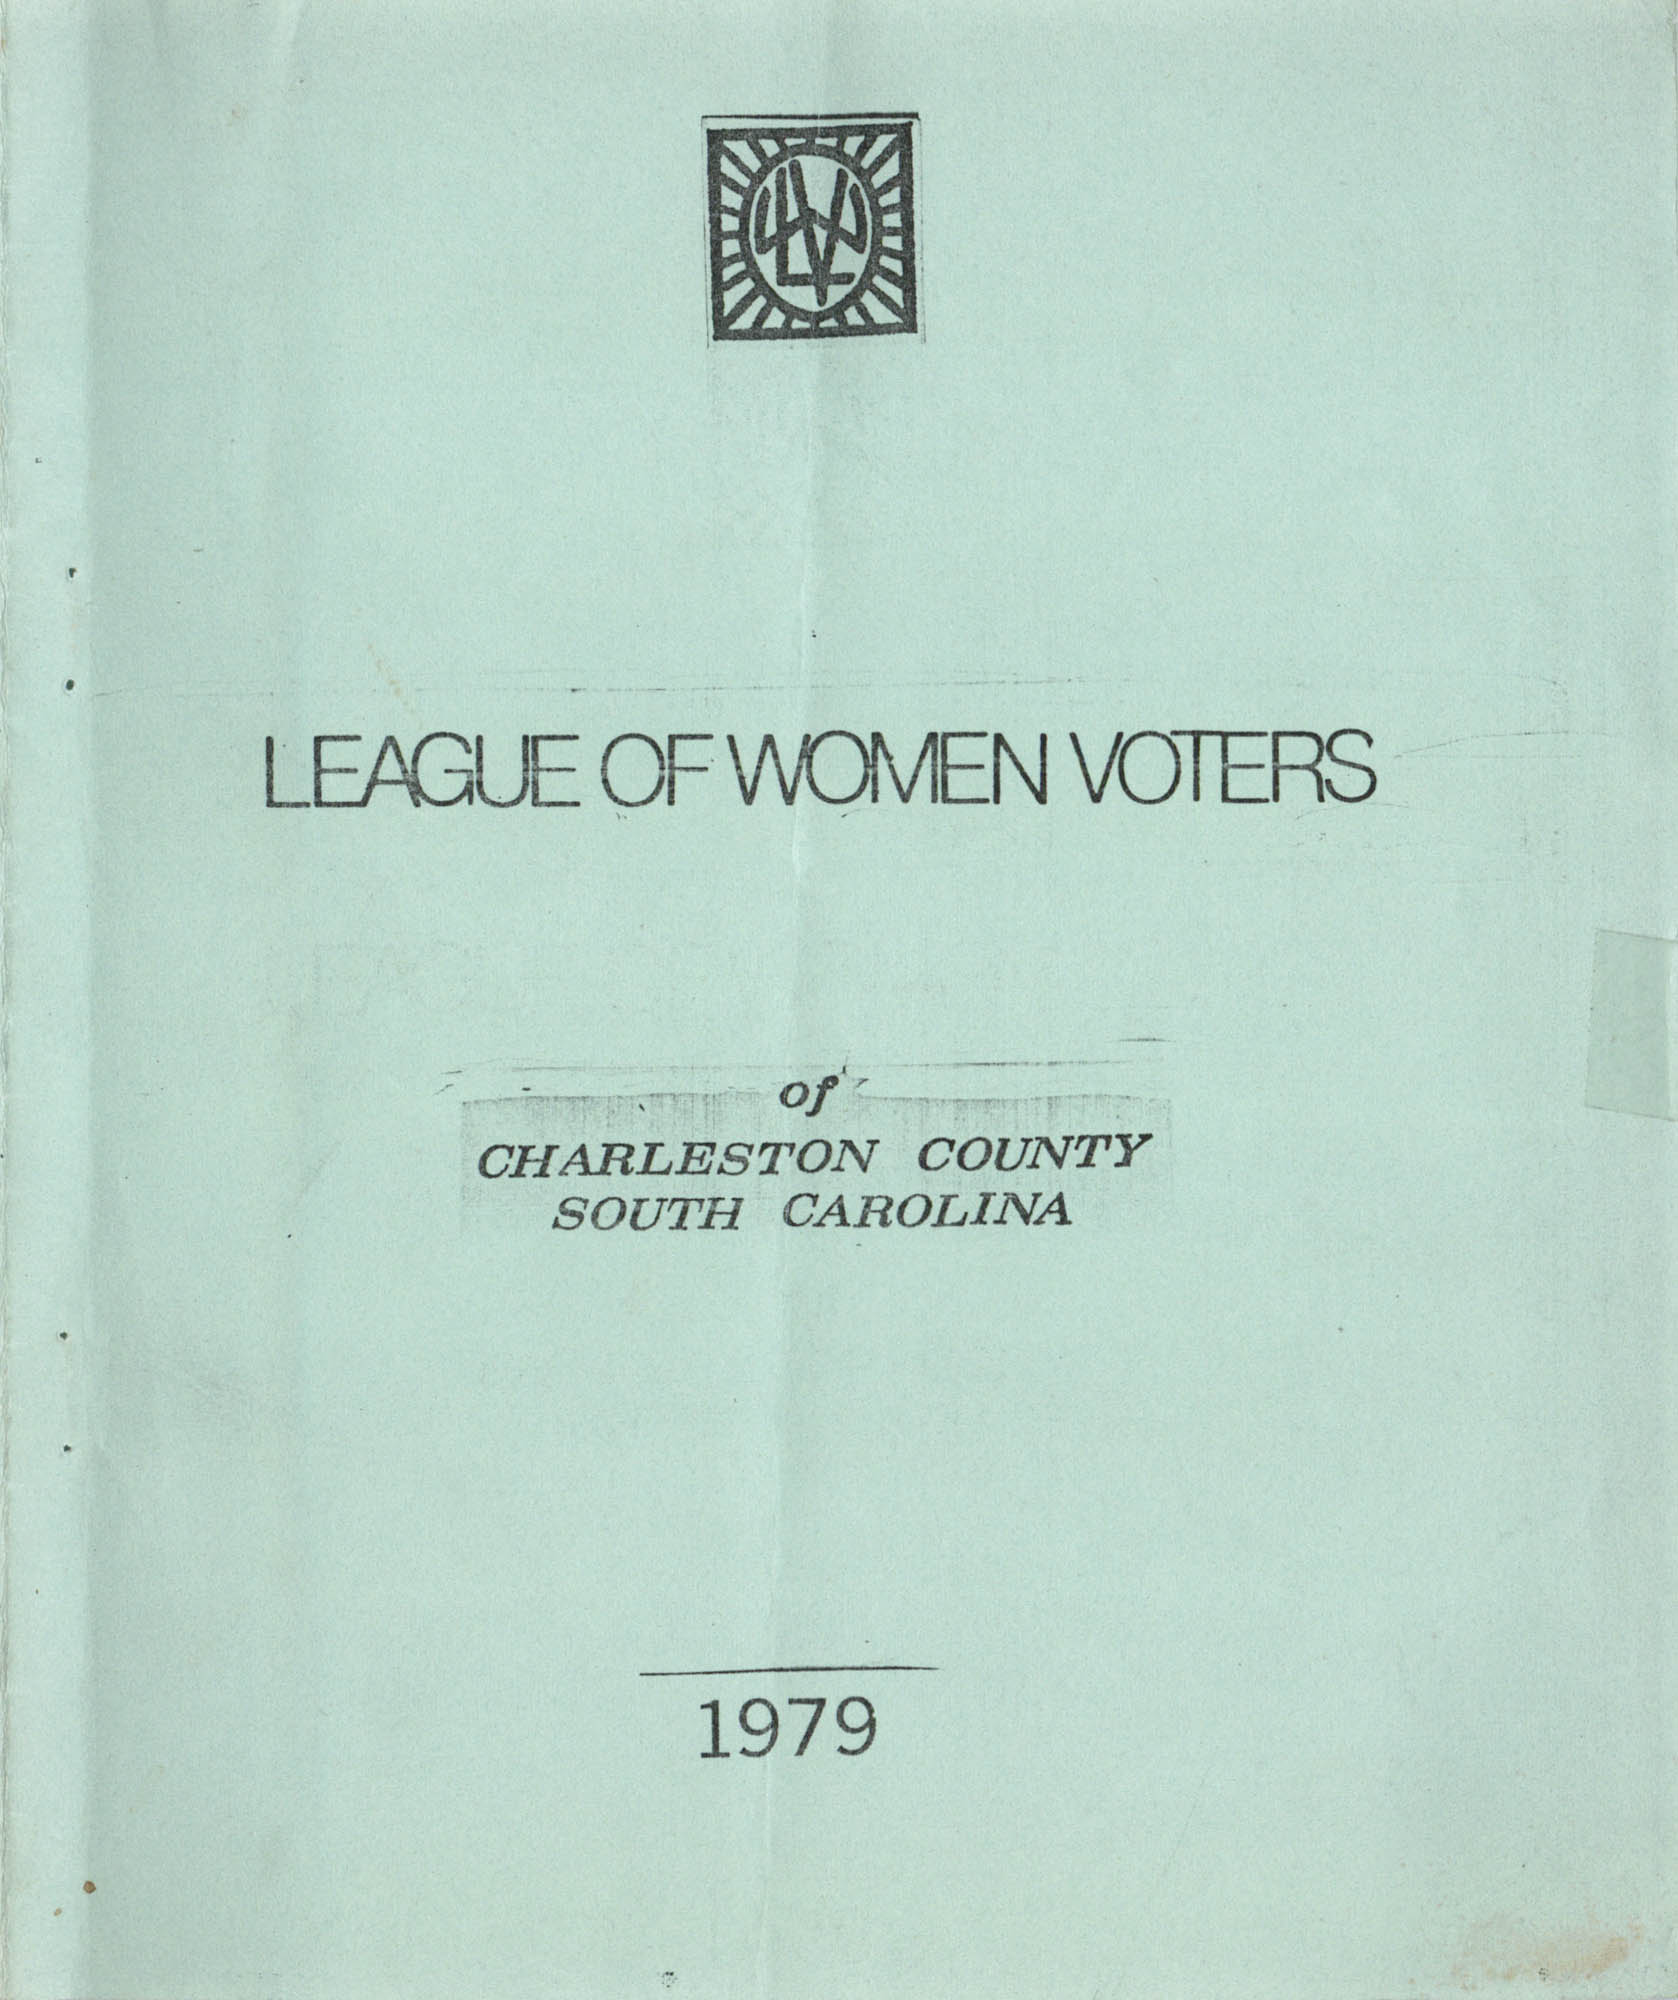 League of Women Voters, Front Cover